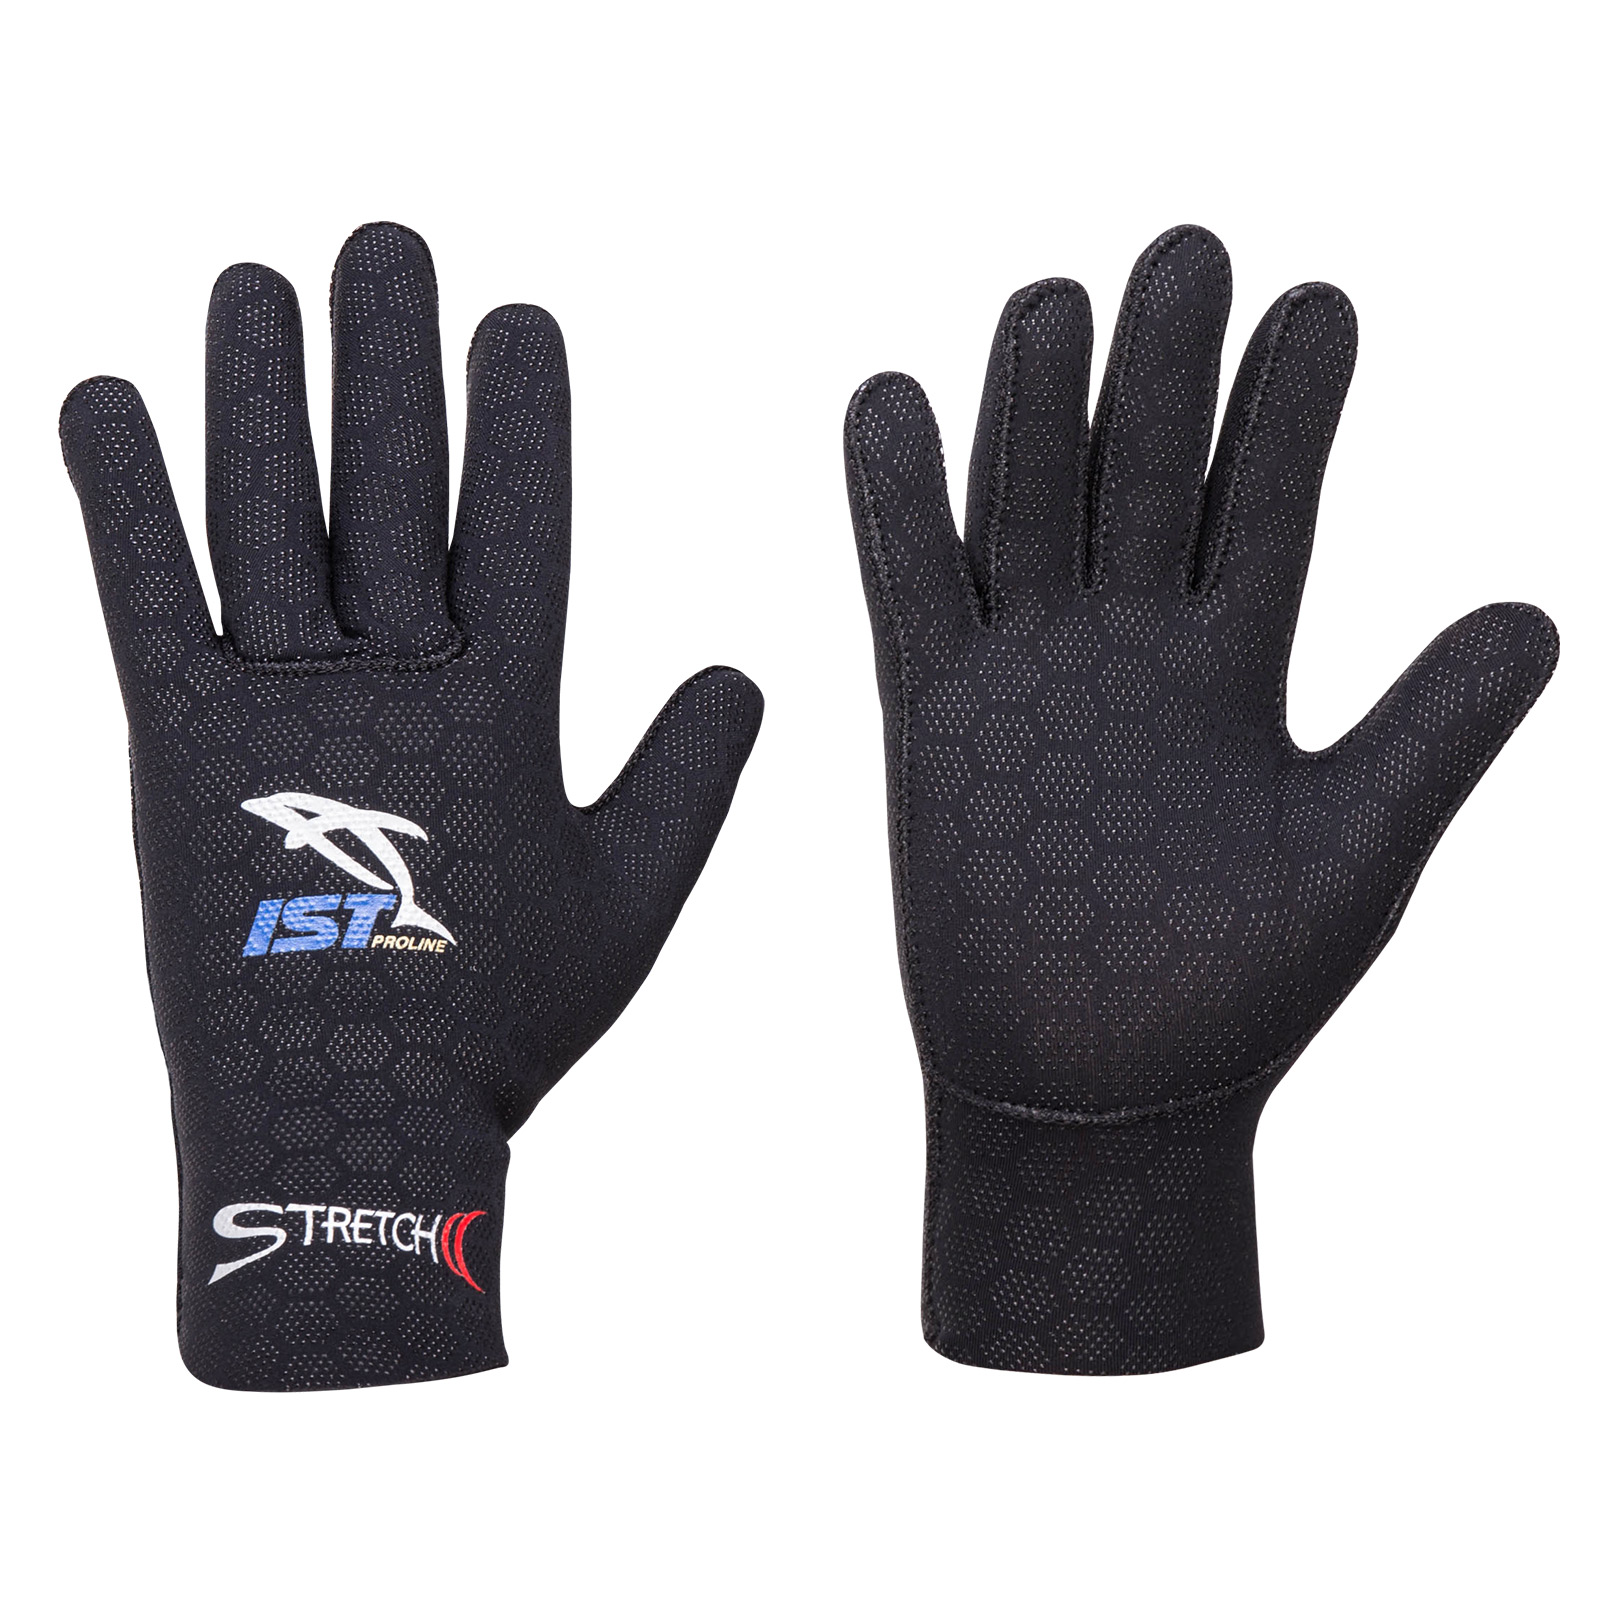 2.5mm Super Stretch Gloves